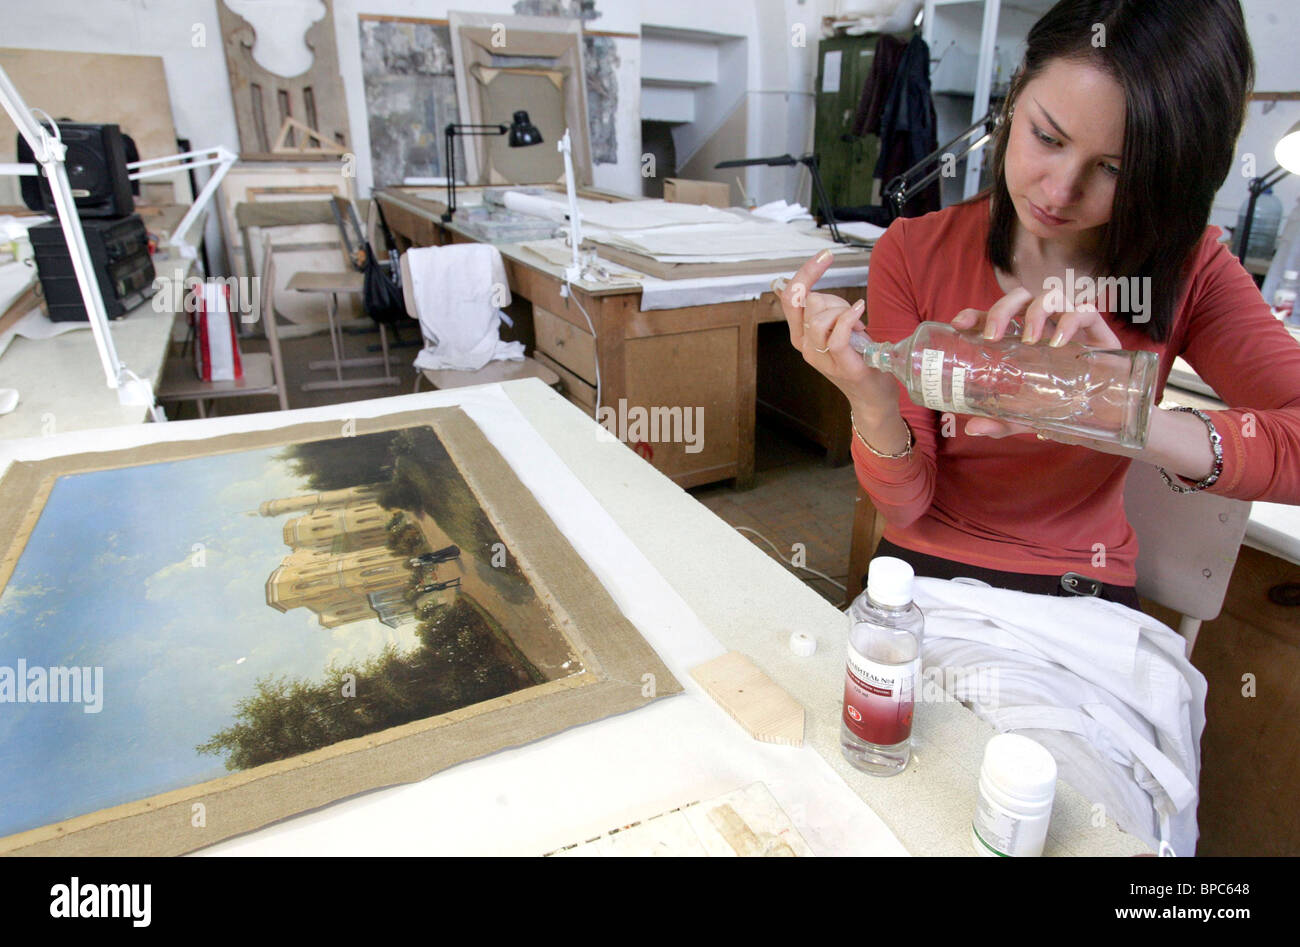 Suzdal Art and Restoration College - Stock Image